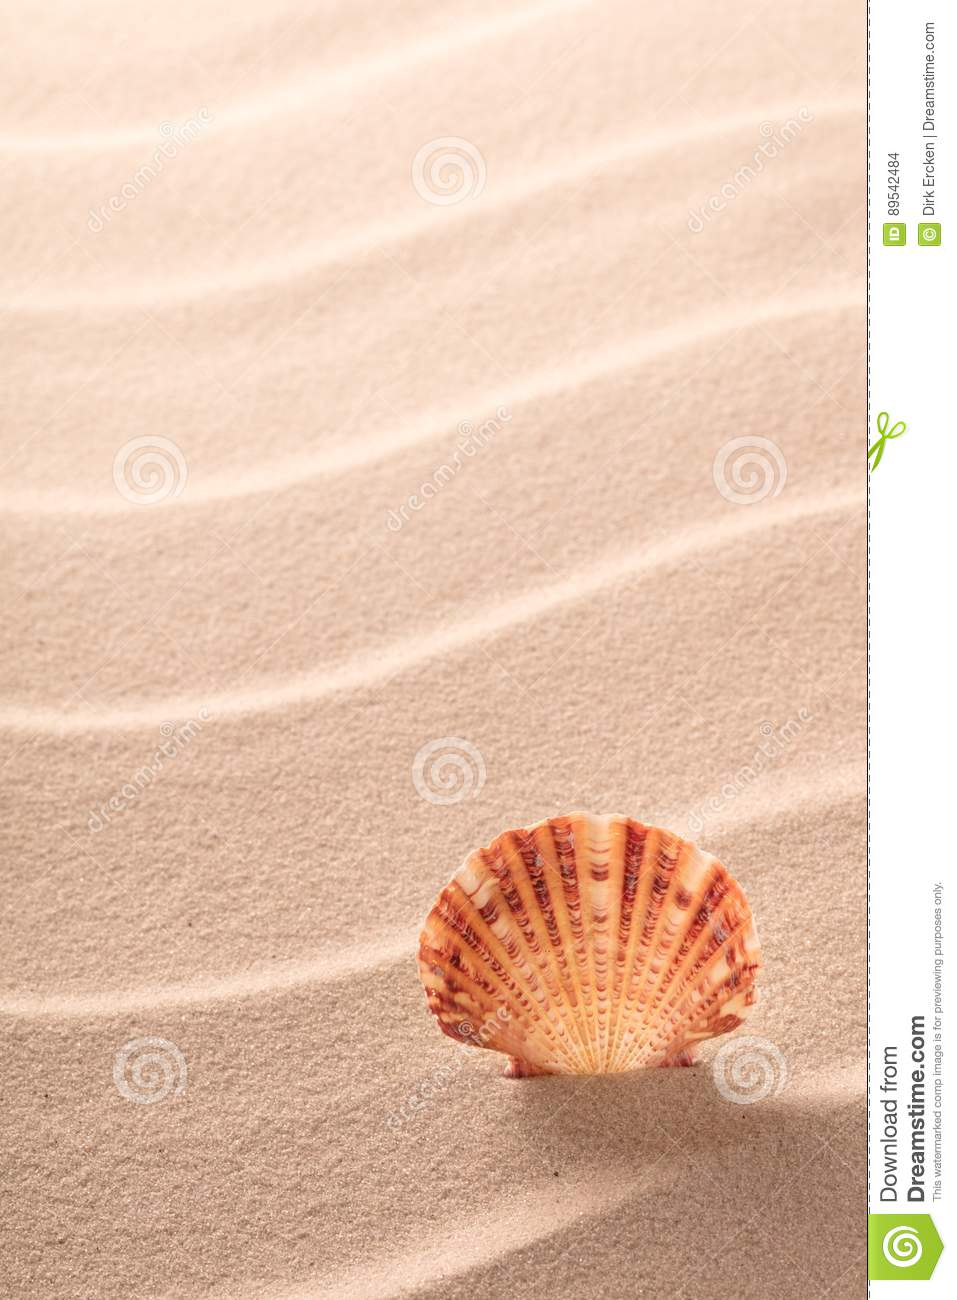 Sseashell standing in rippled beach sand